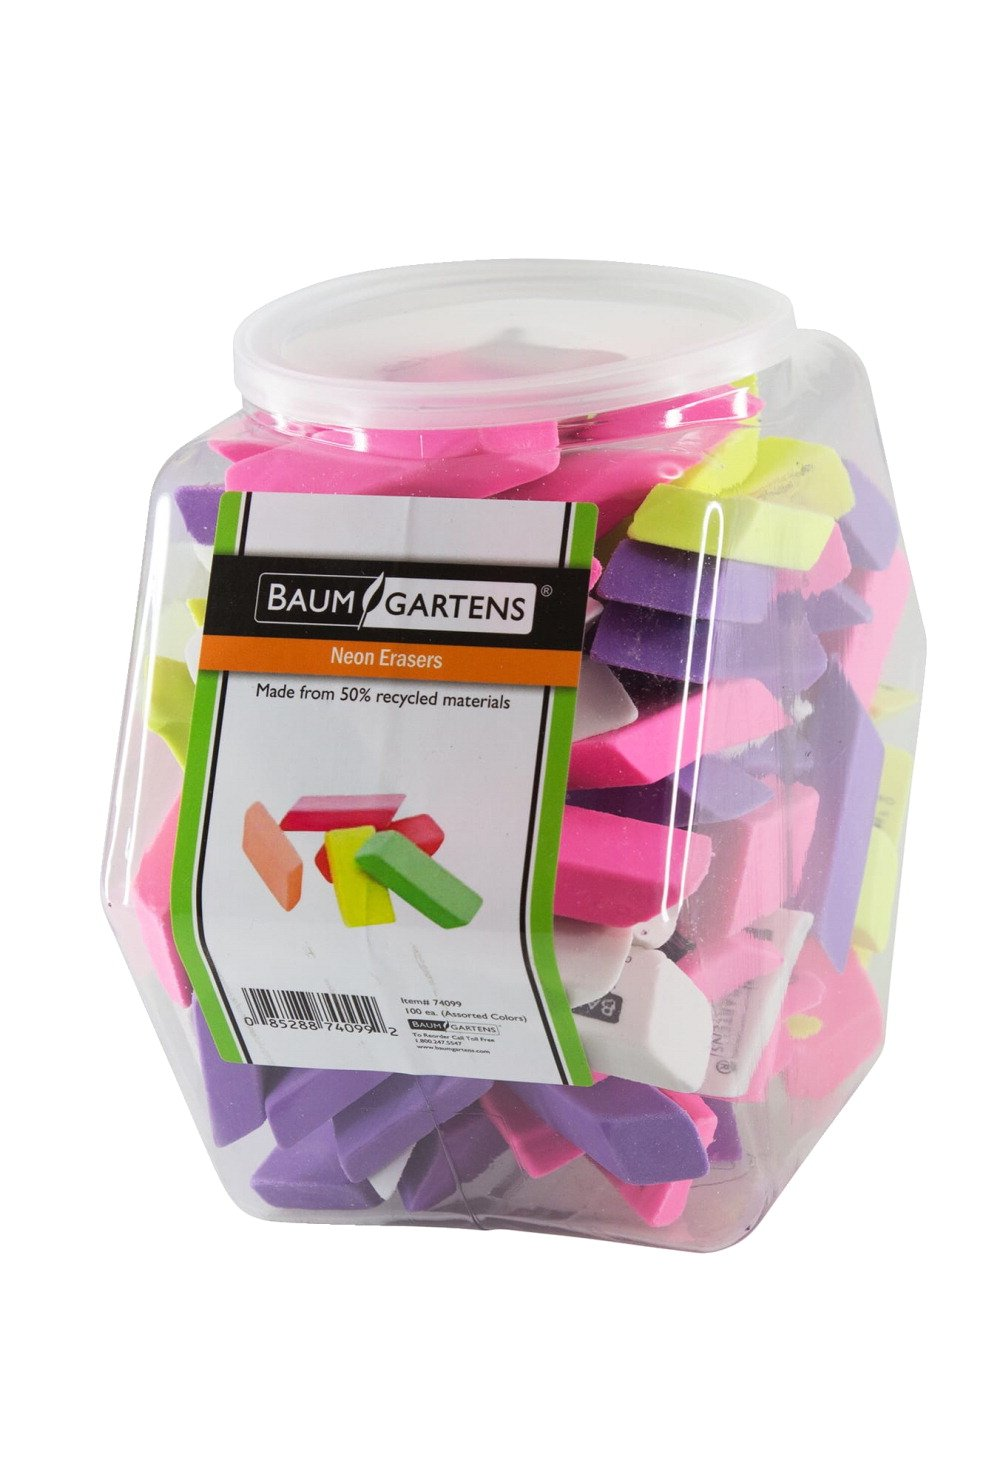 Baumgartens Latex-Free Lead-Free Pencil Eraser, Assorted Neon Color, Pack of 100